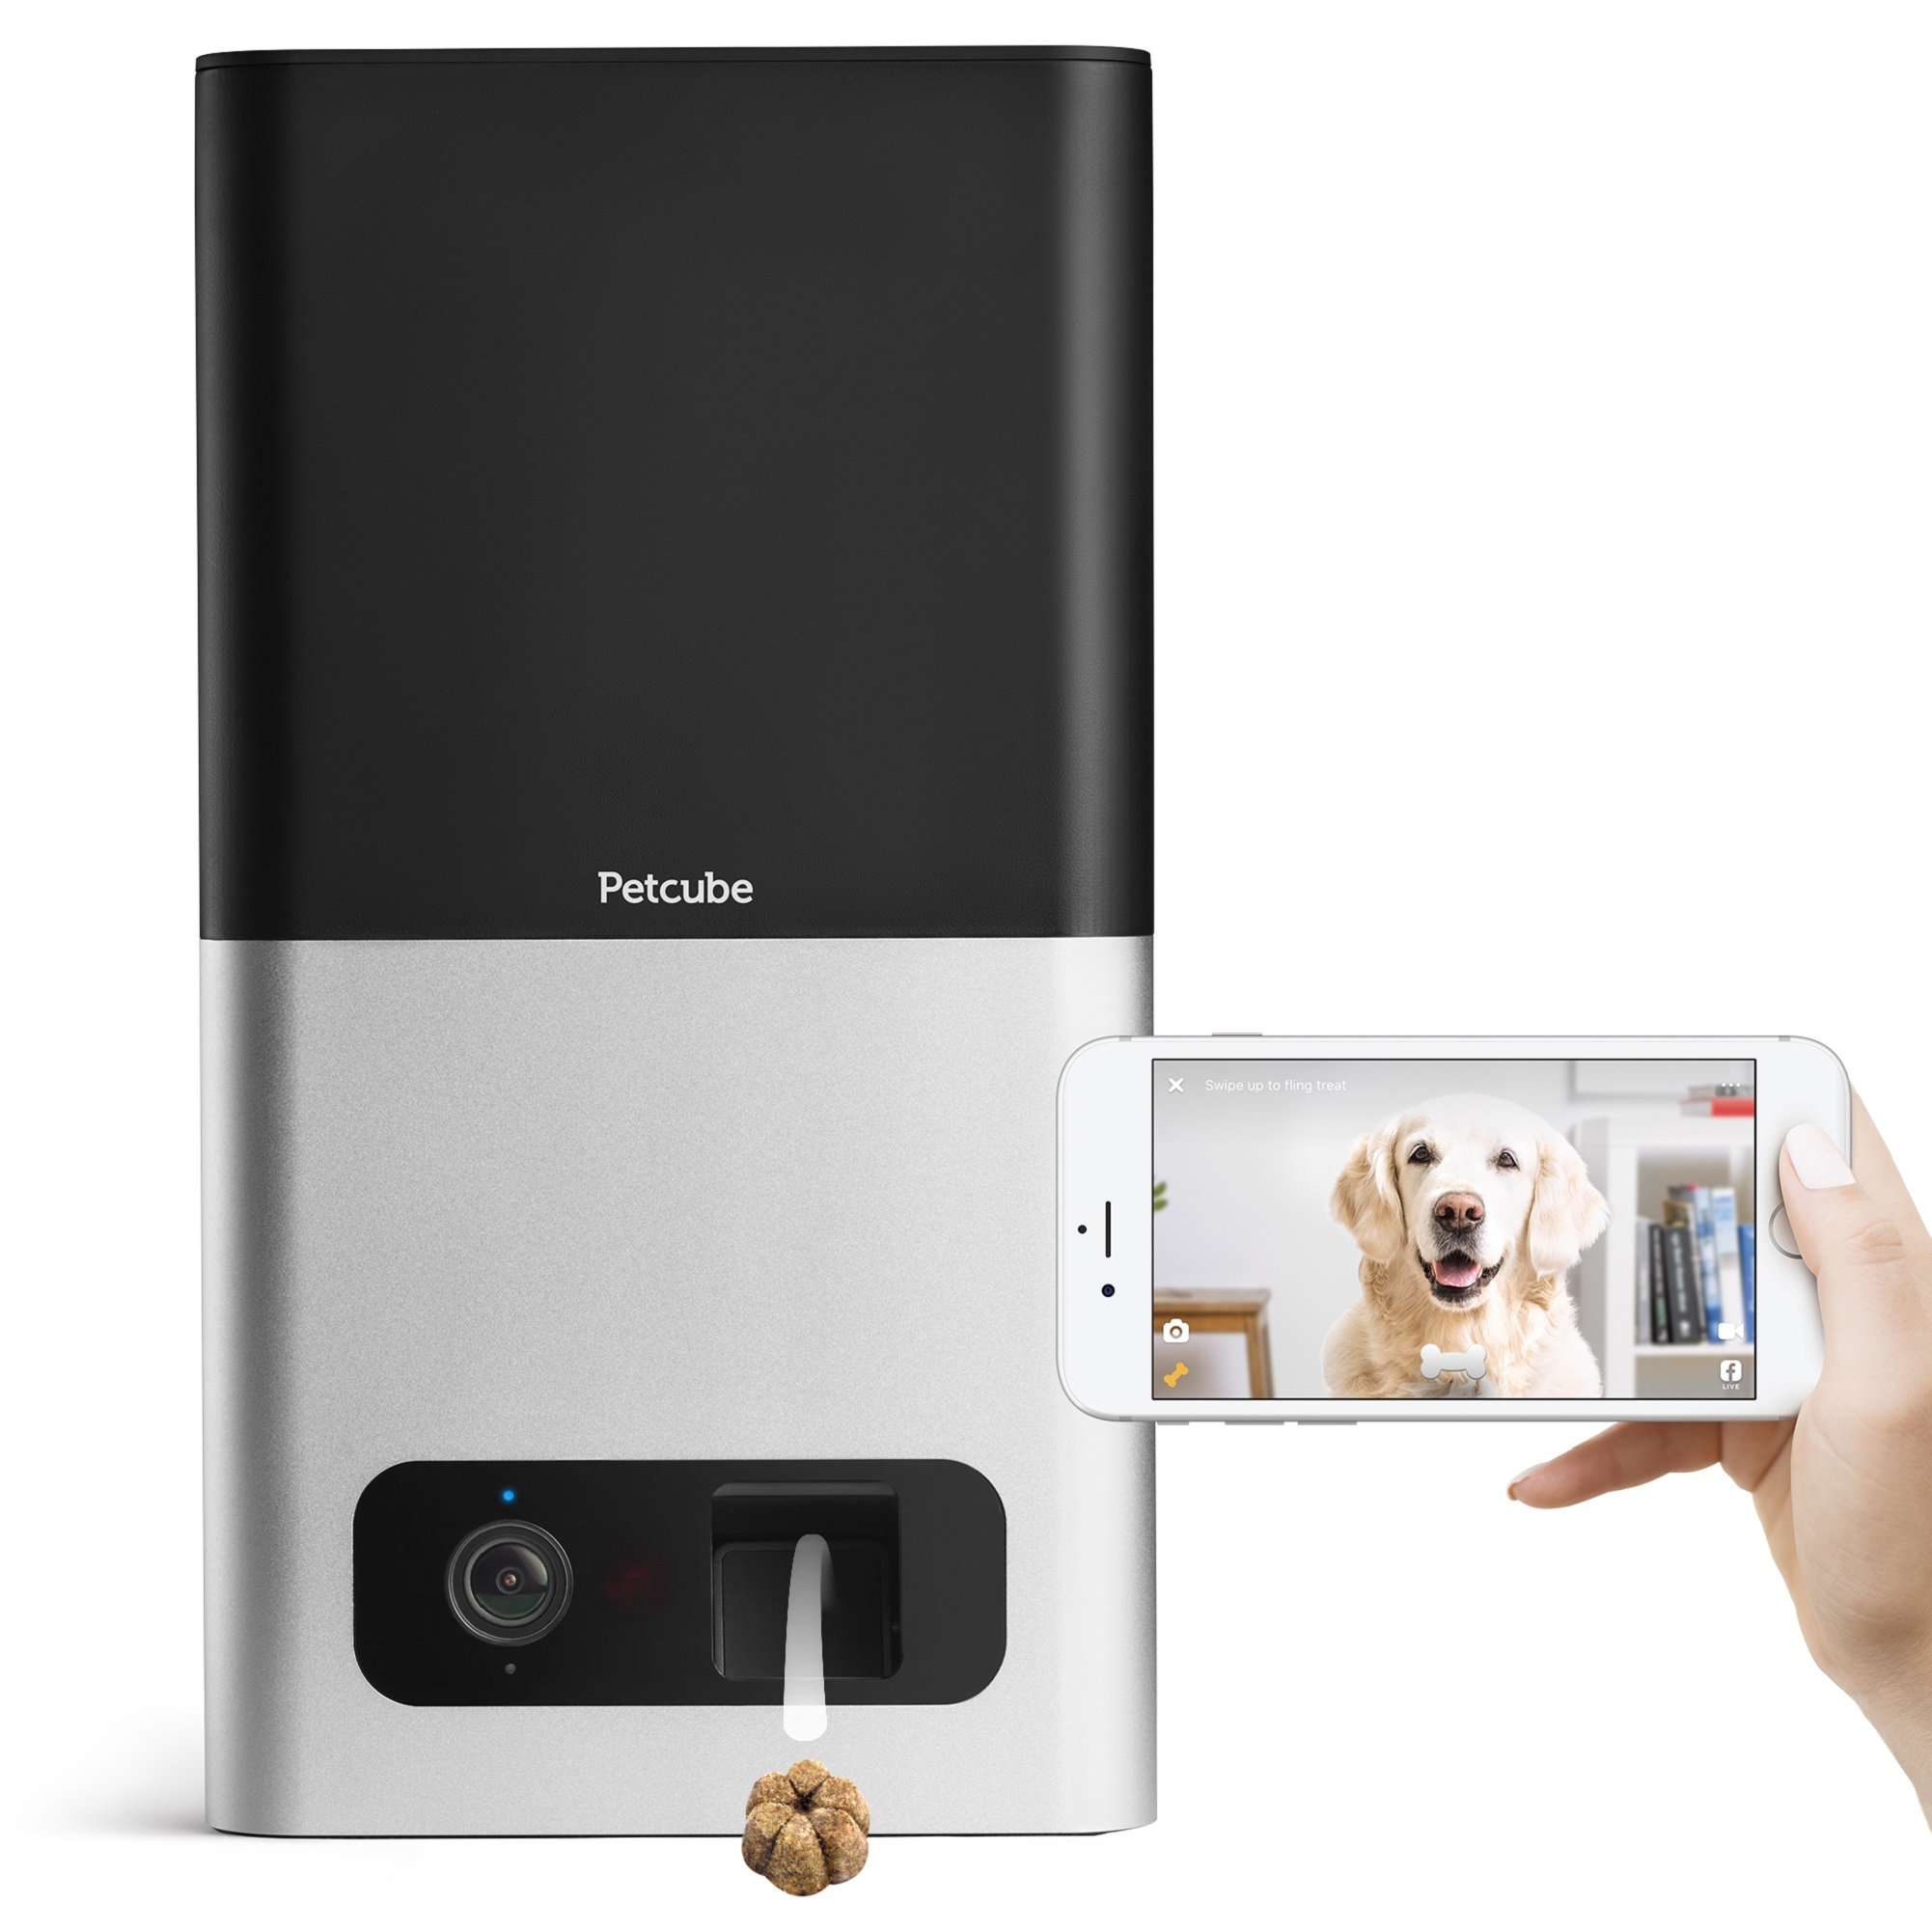 Petcube Bites HD Pet Camera and Treat Dispenser: 2-Way Talk, Night Vision. Works with Alexa. As seen on Ellen.